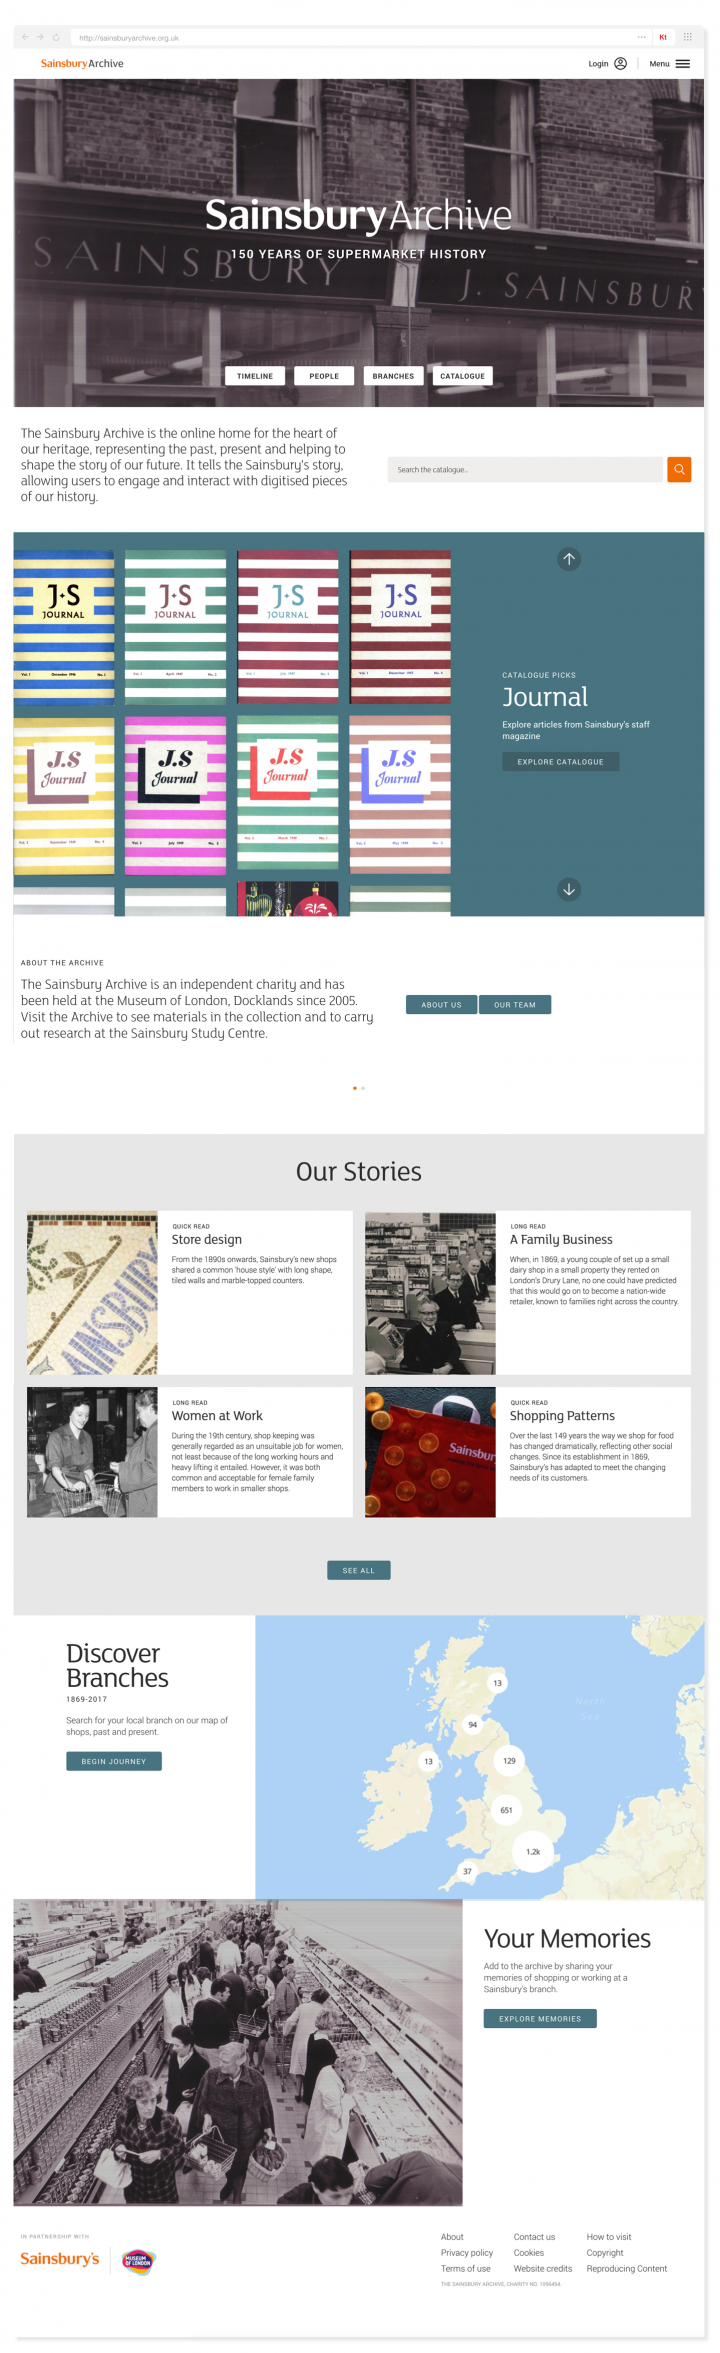 Sainsbury Archive homepage in full